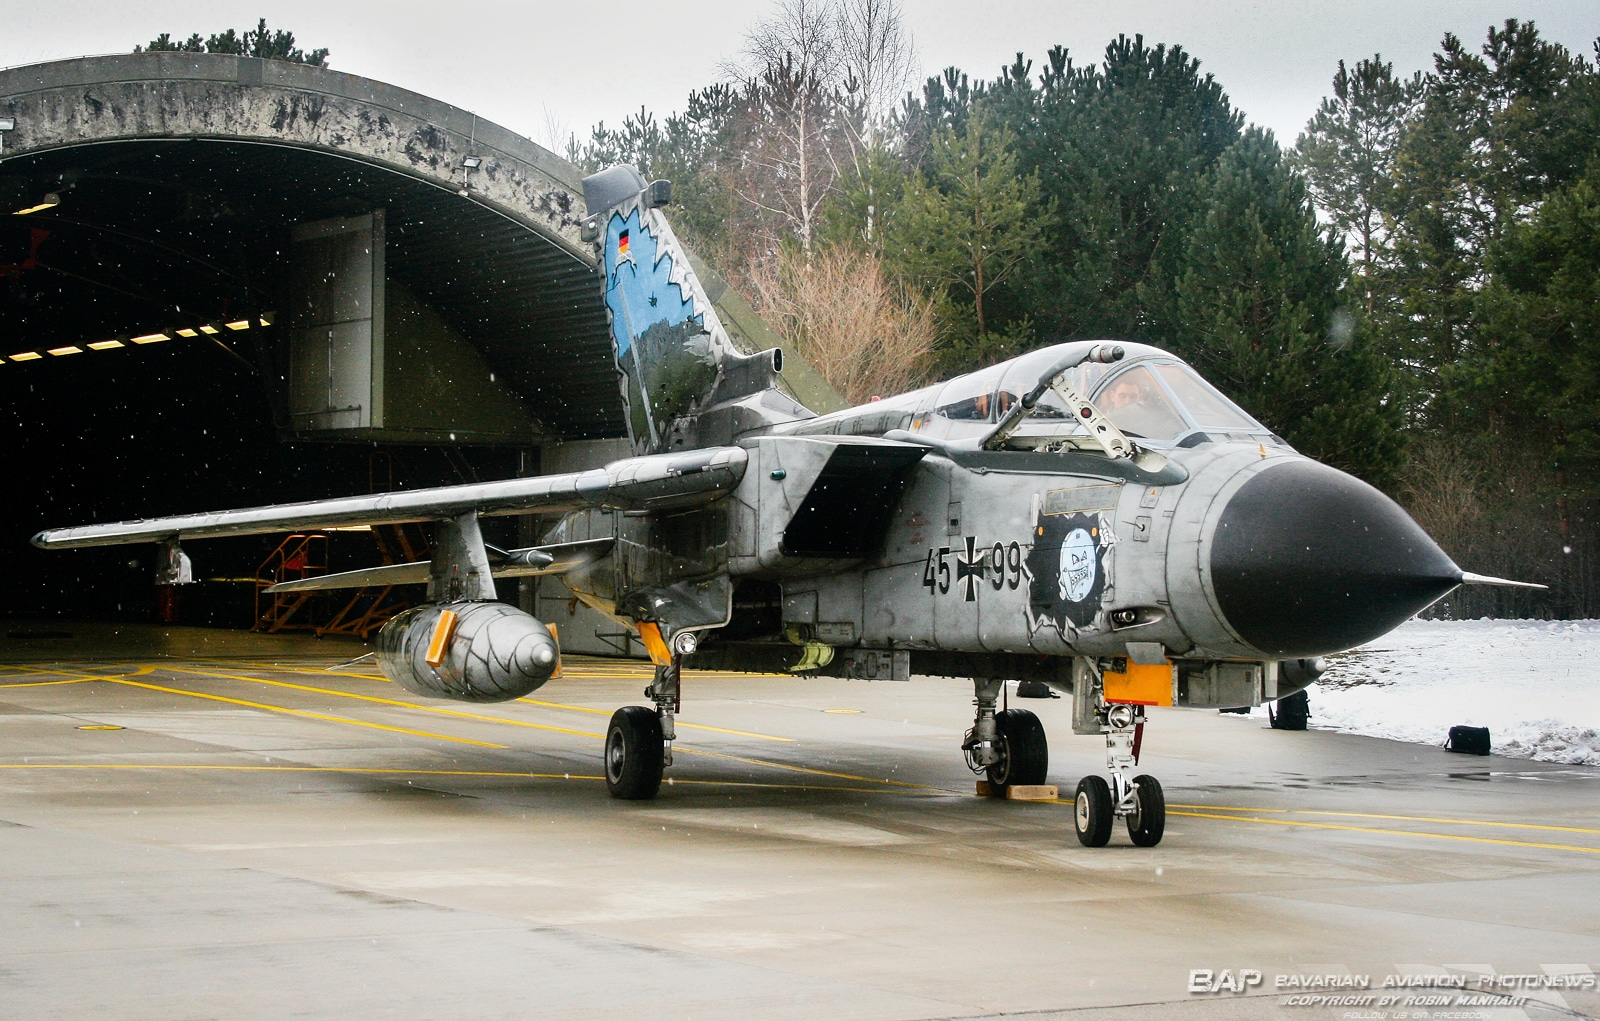 Tornado 45+99 55.555 Flight Hour s Holloman GAFTC at Lechfeld !